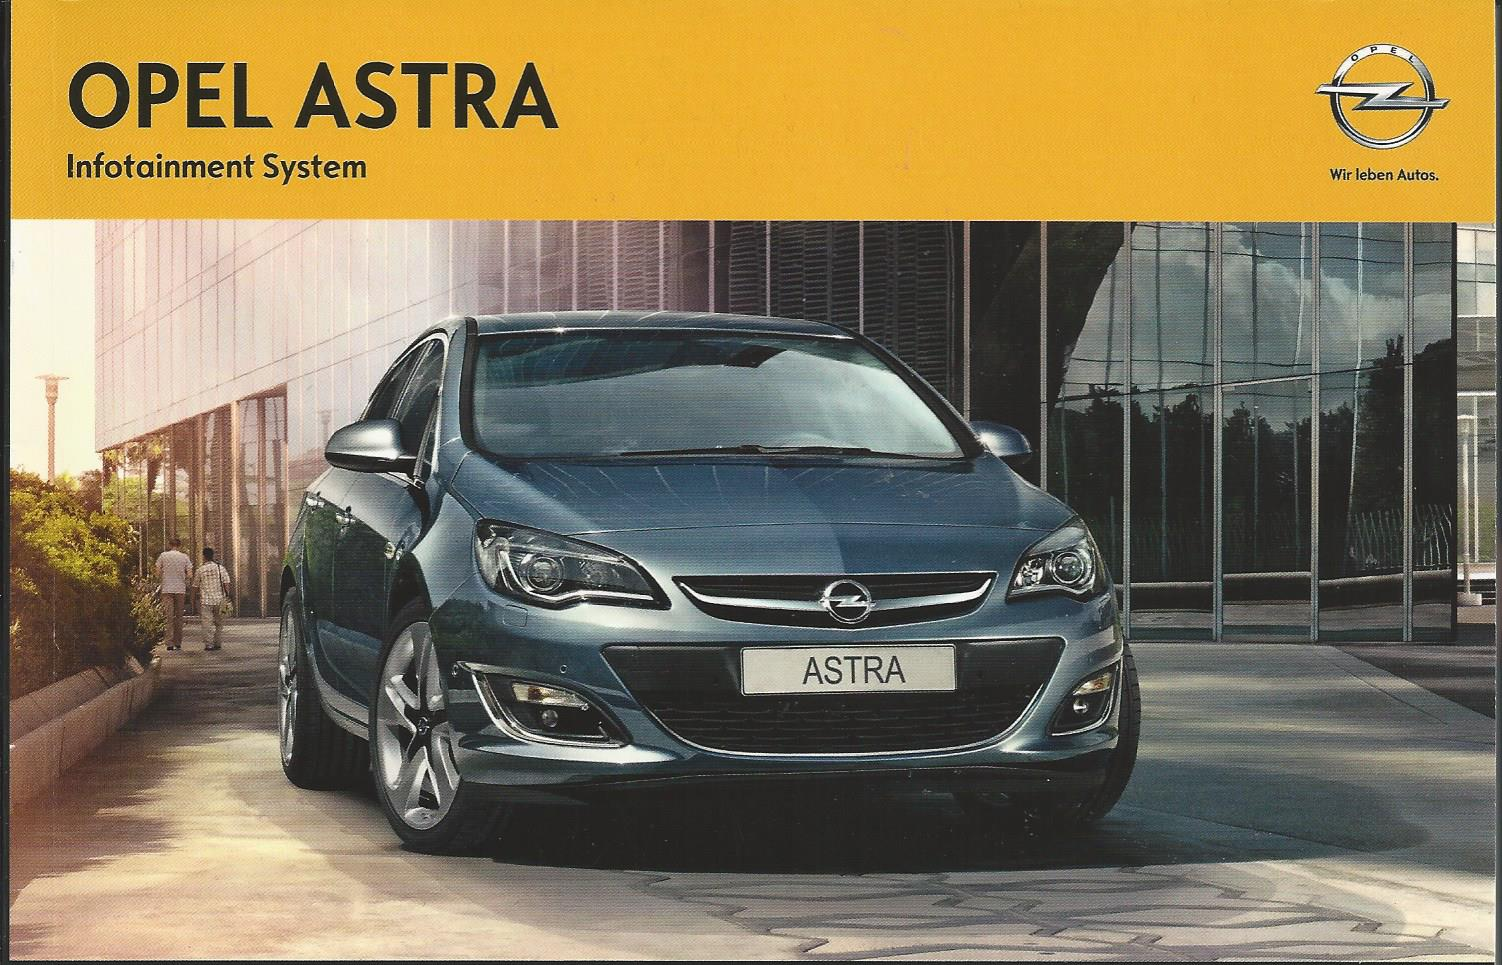 opel astra infotainment system 2013 betriebsanleitung. Black Bedroom Furniture Sets. Home Design Ideas